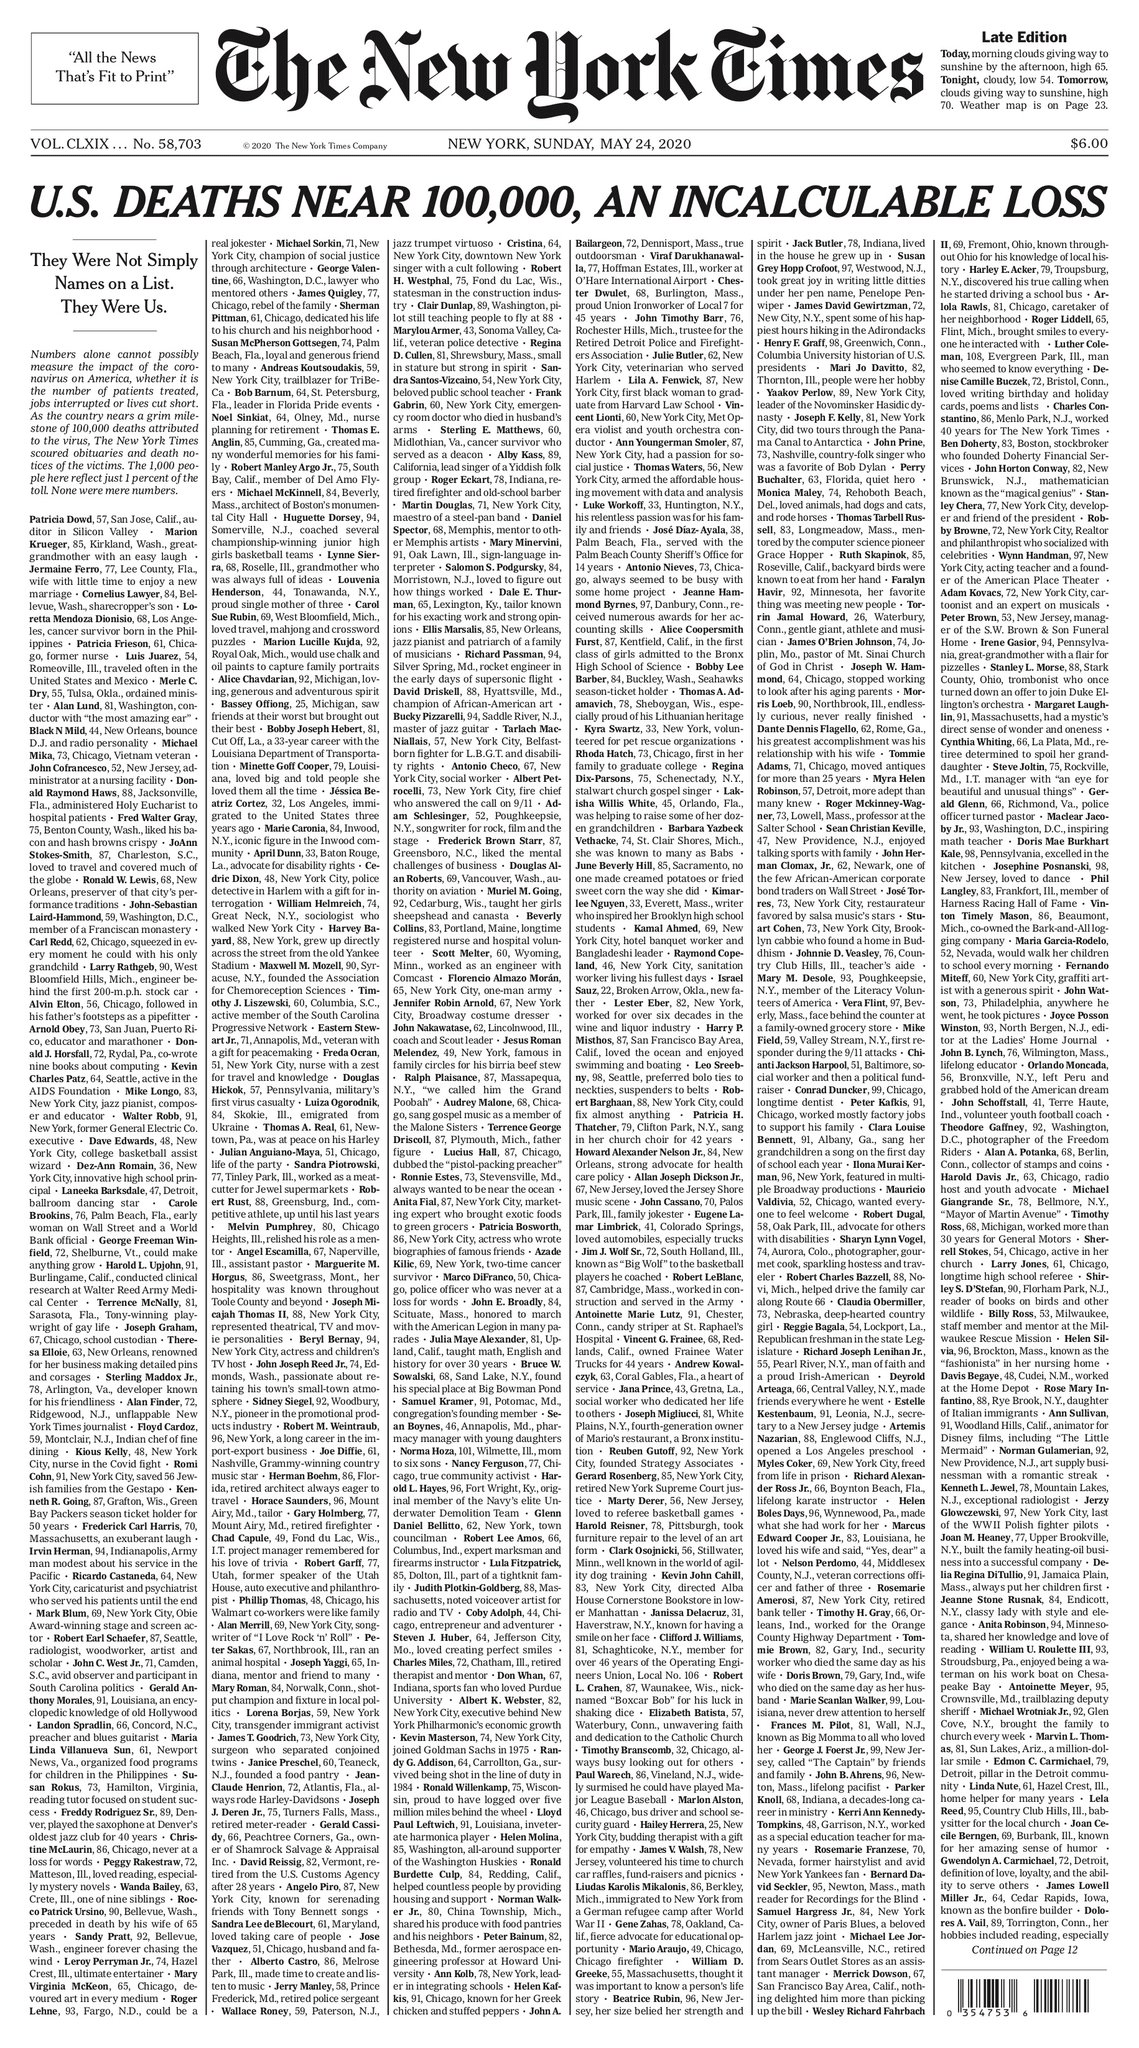 new york times sunday front page may 24 2020 covid named obits This Was the Front Page of the Sunday Edition of the New York Times